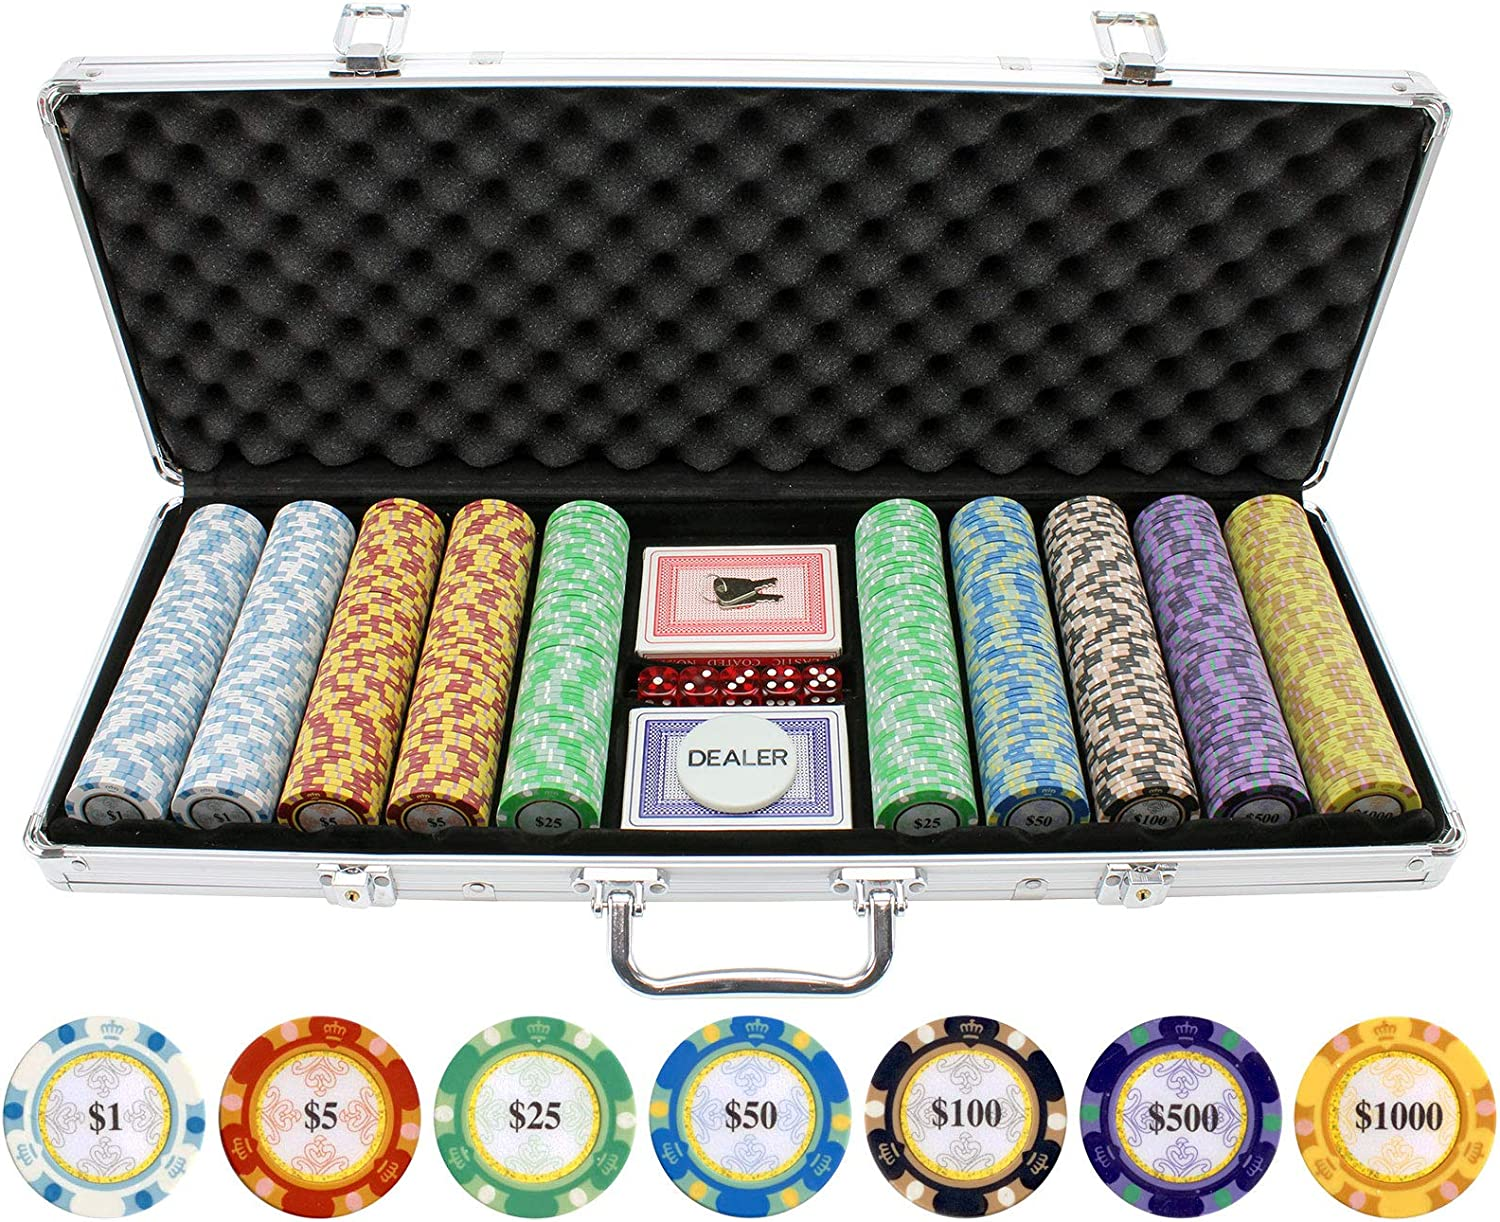 Max 73% OFF Ranking TOP3 JP Commerce 500 Piece Monte Carlo Chips Clay Poker Set